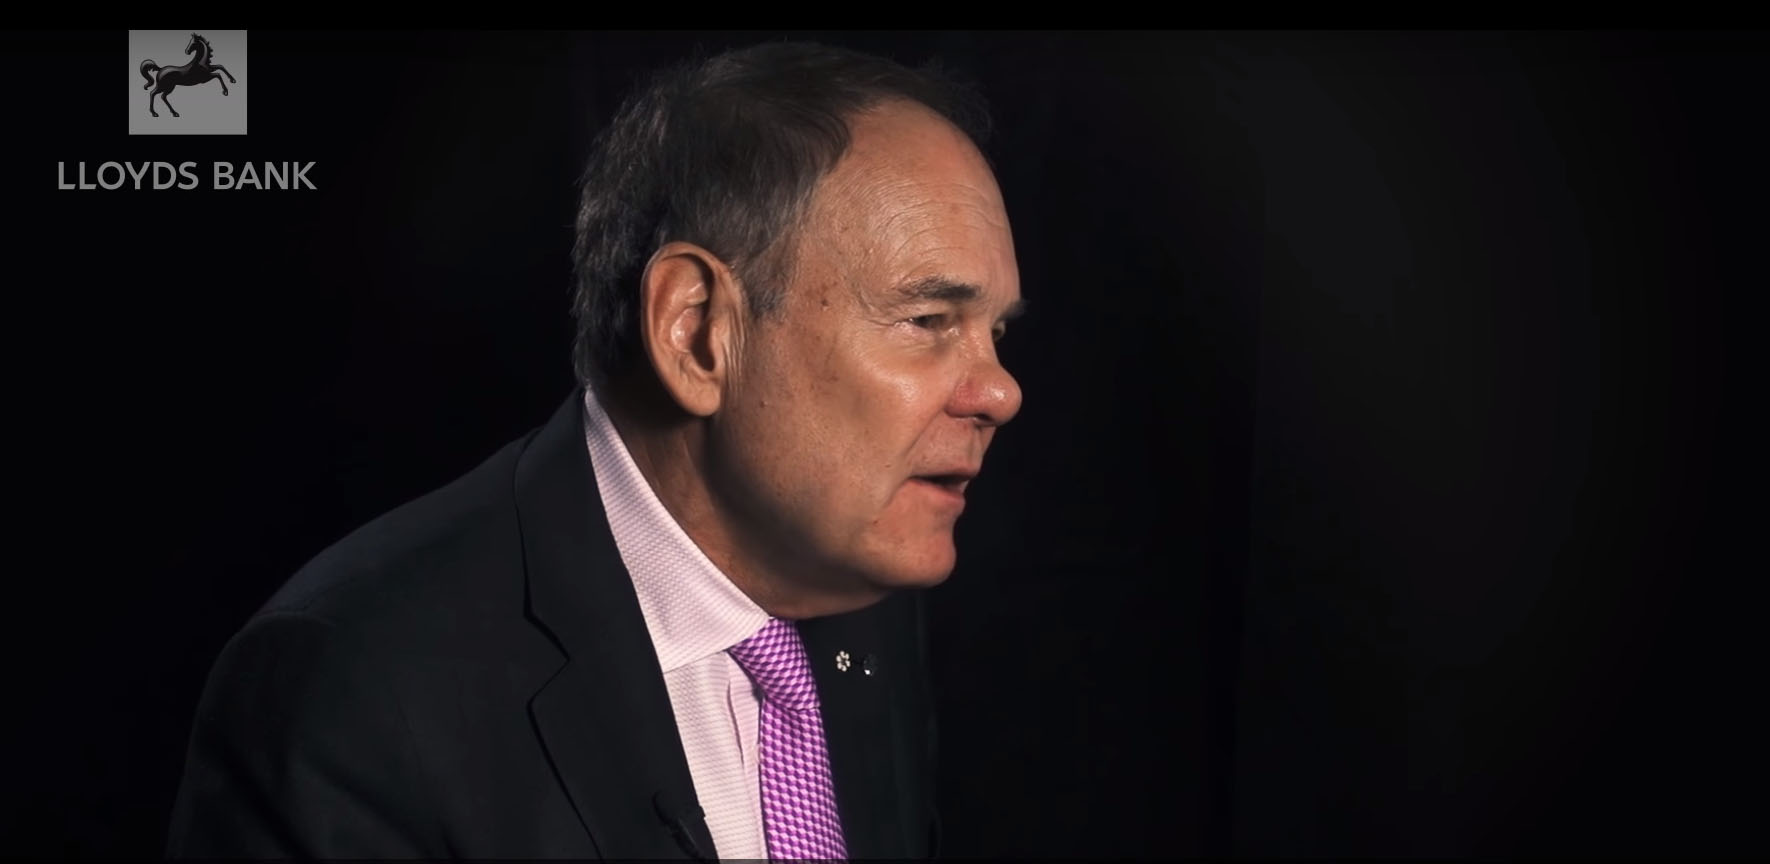 Understand blockchain in under 7 minutes: Don Tapscott with Lloyds Bank